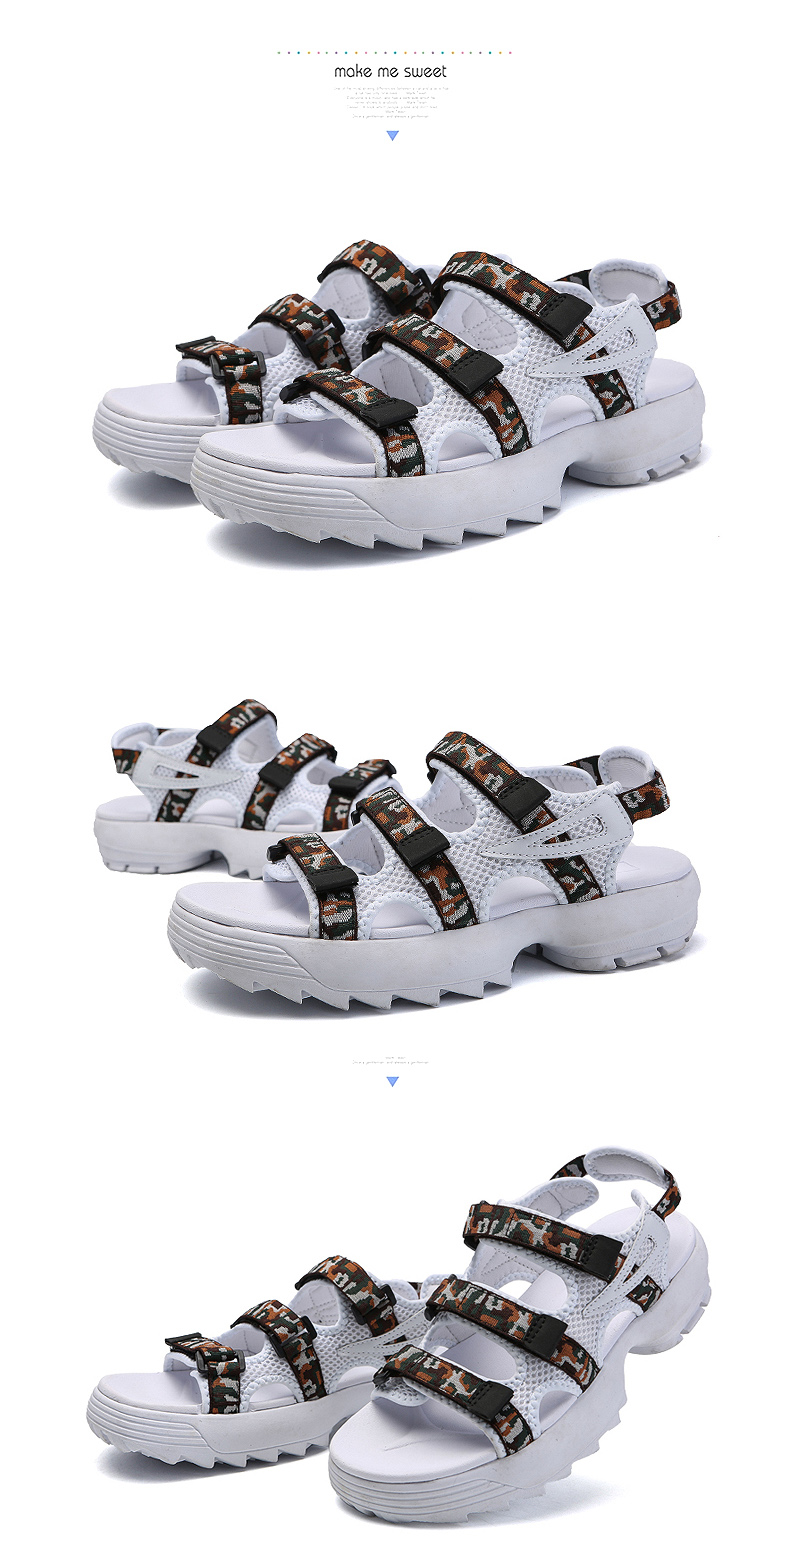 Sandals Men's Beach Shoes Summer Sports Korean Version Of The Trend Increase Big Sandals And Slippers Summer Boys Tide 26 Online shopping Bangladesh